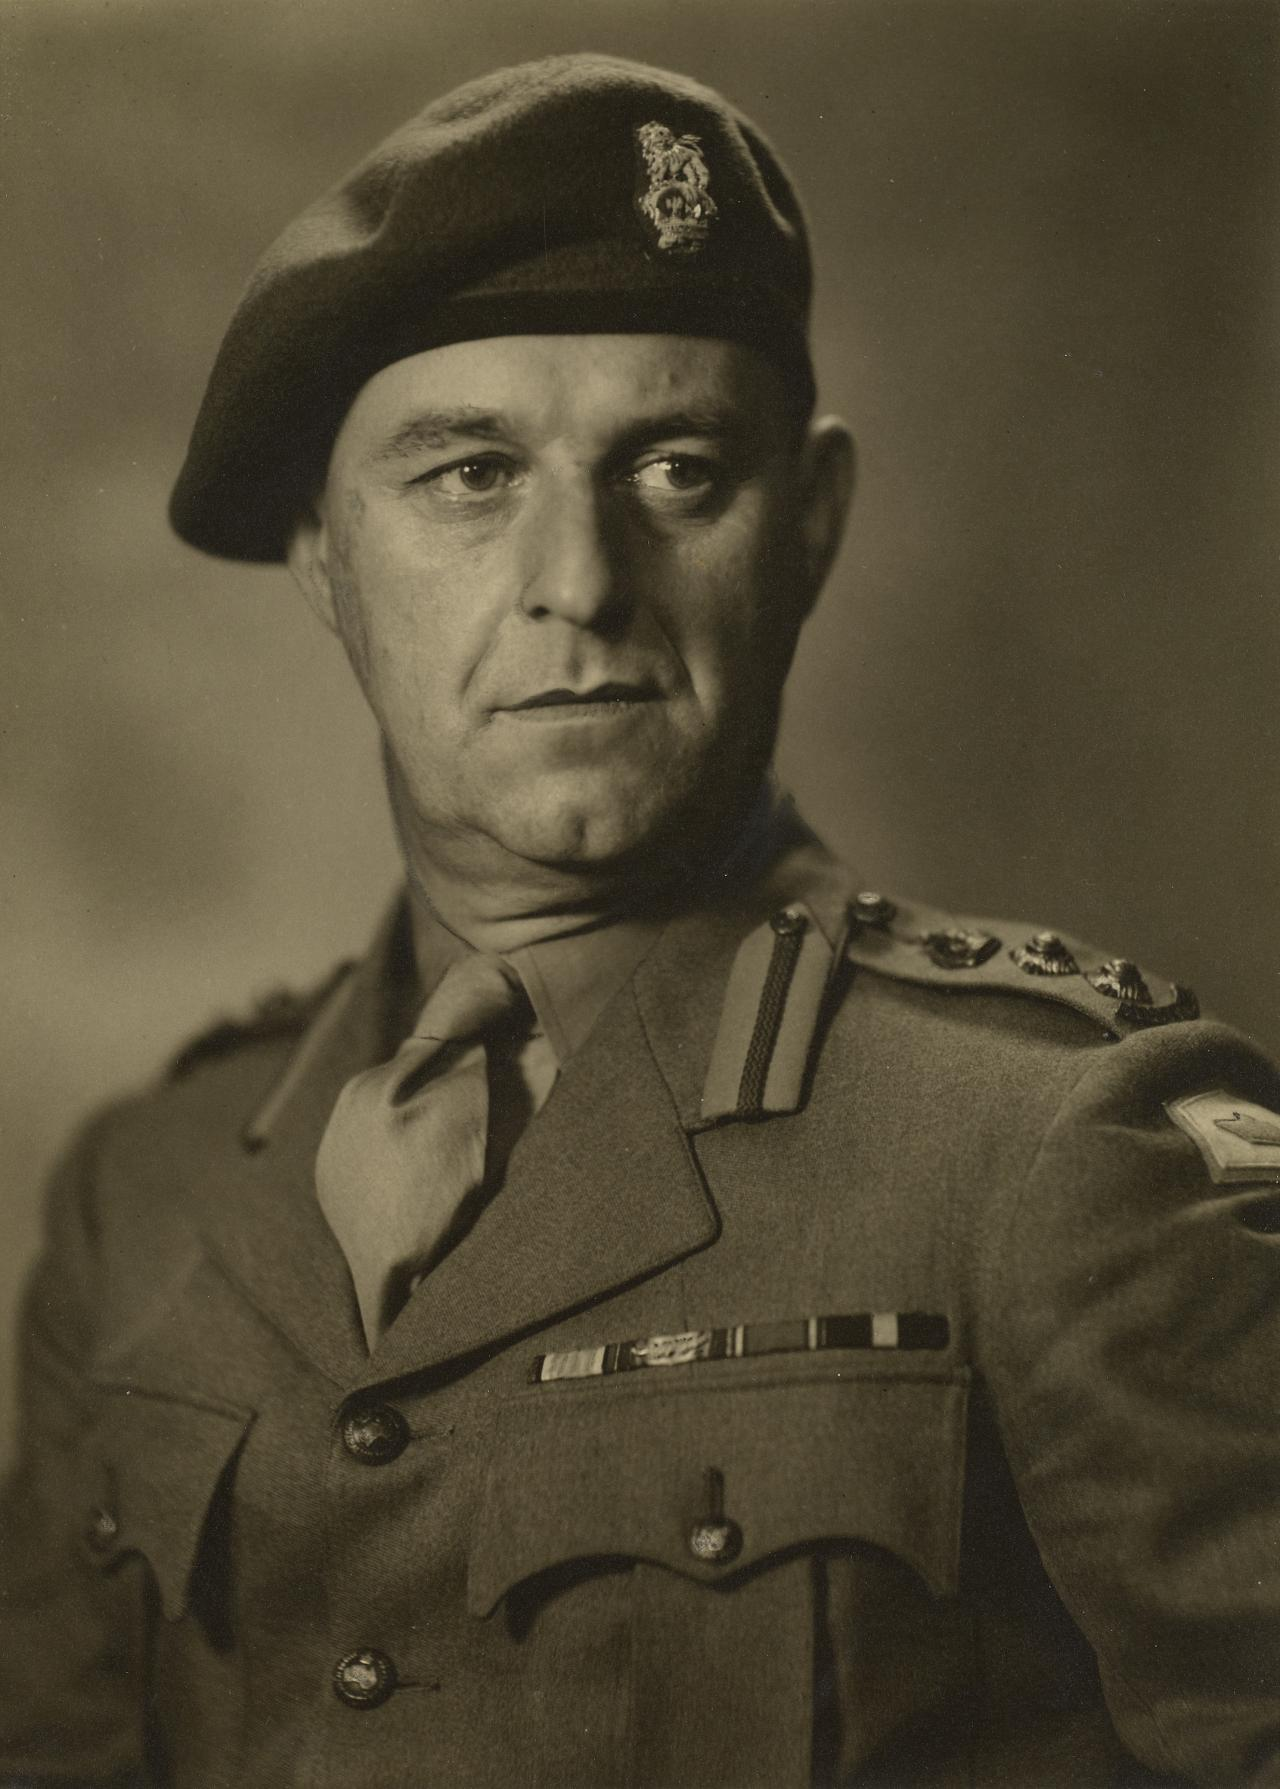 Col Clarebrough